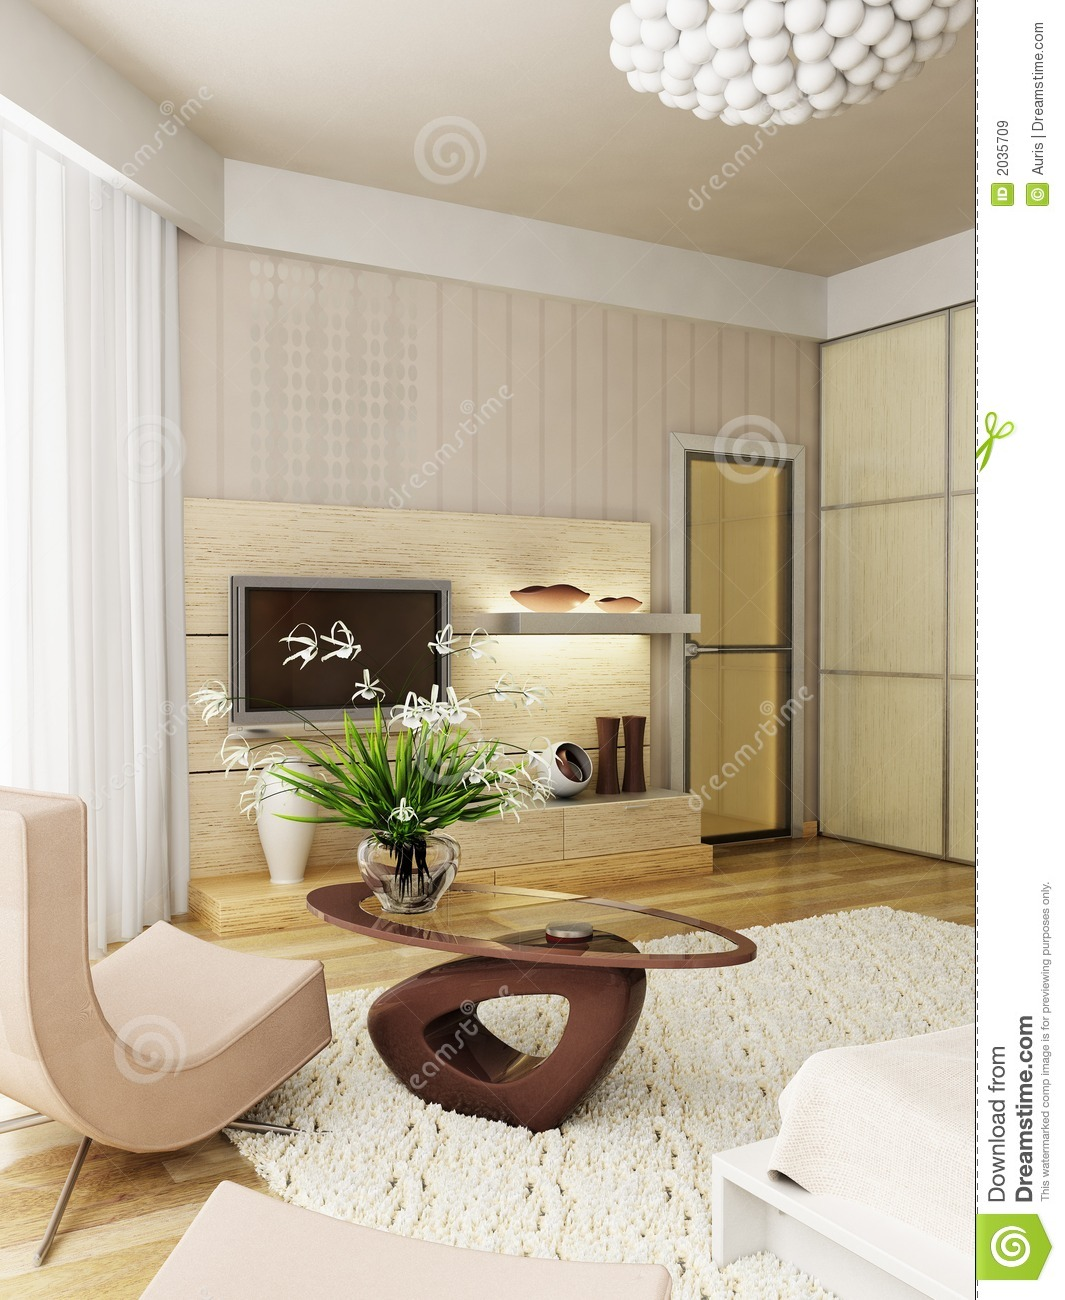 Modern Bedroom Interior Modern Bedroom Interior Rendering Royalty Free Stock Images